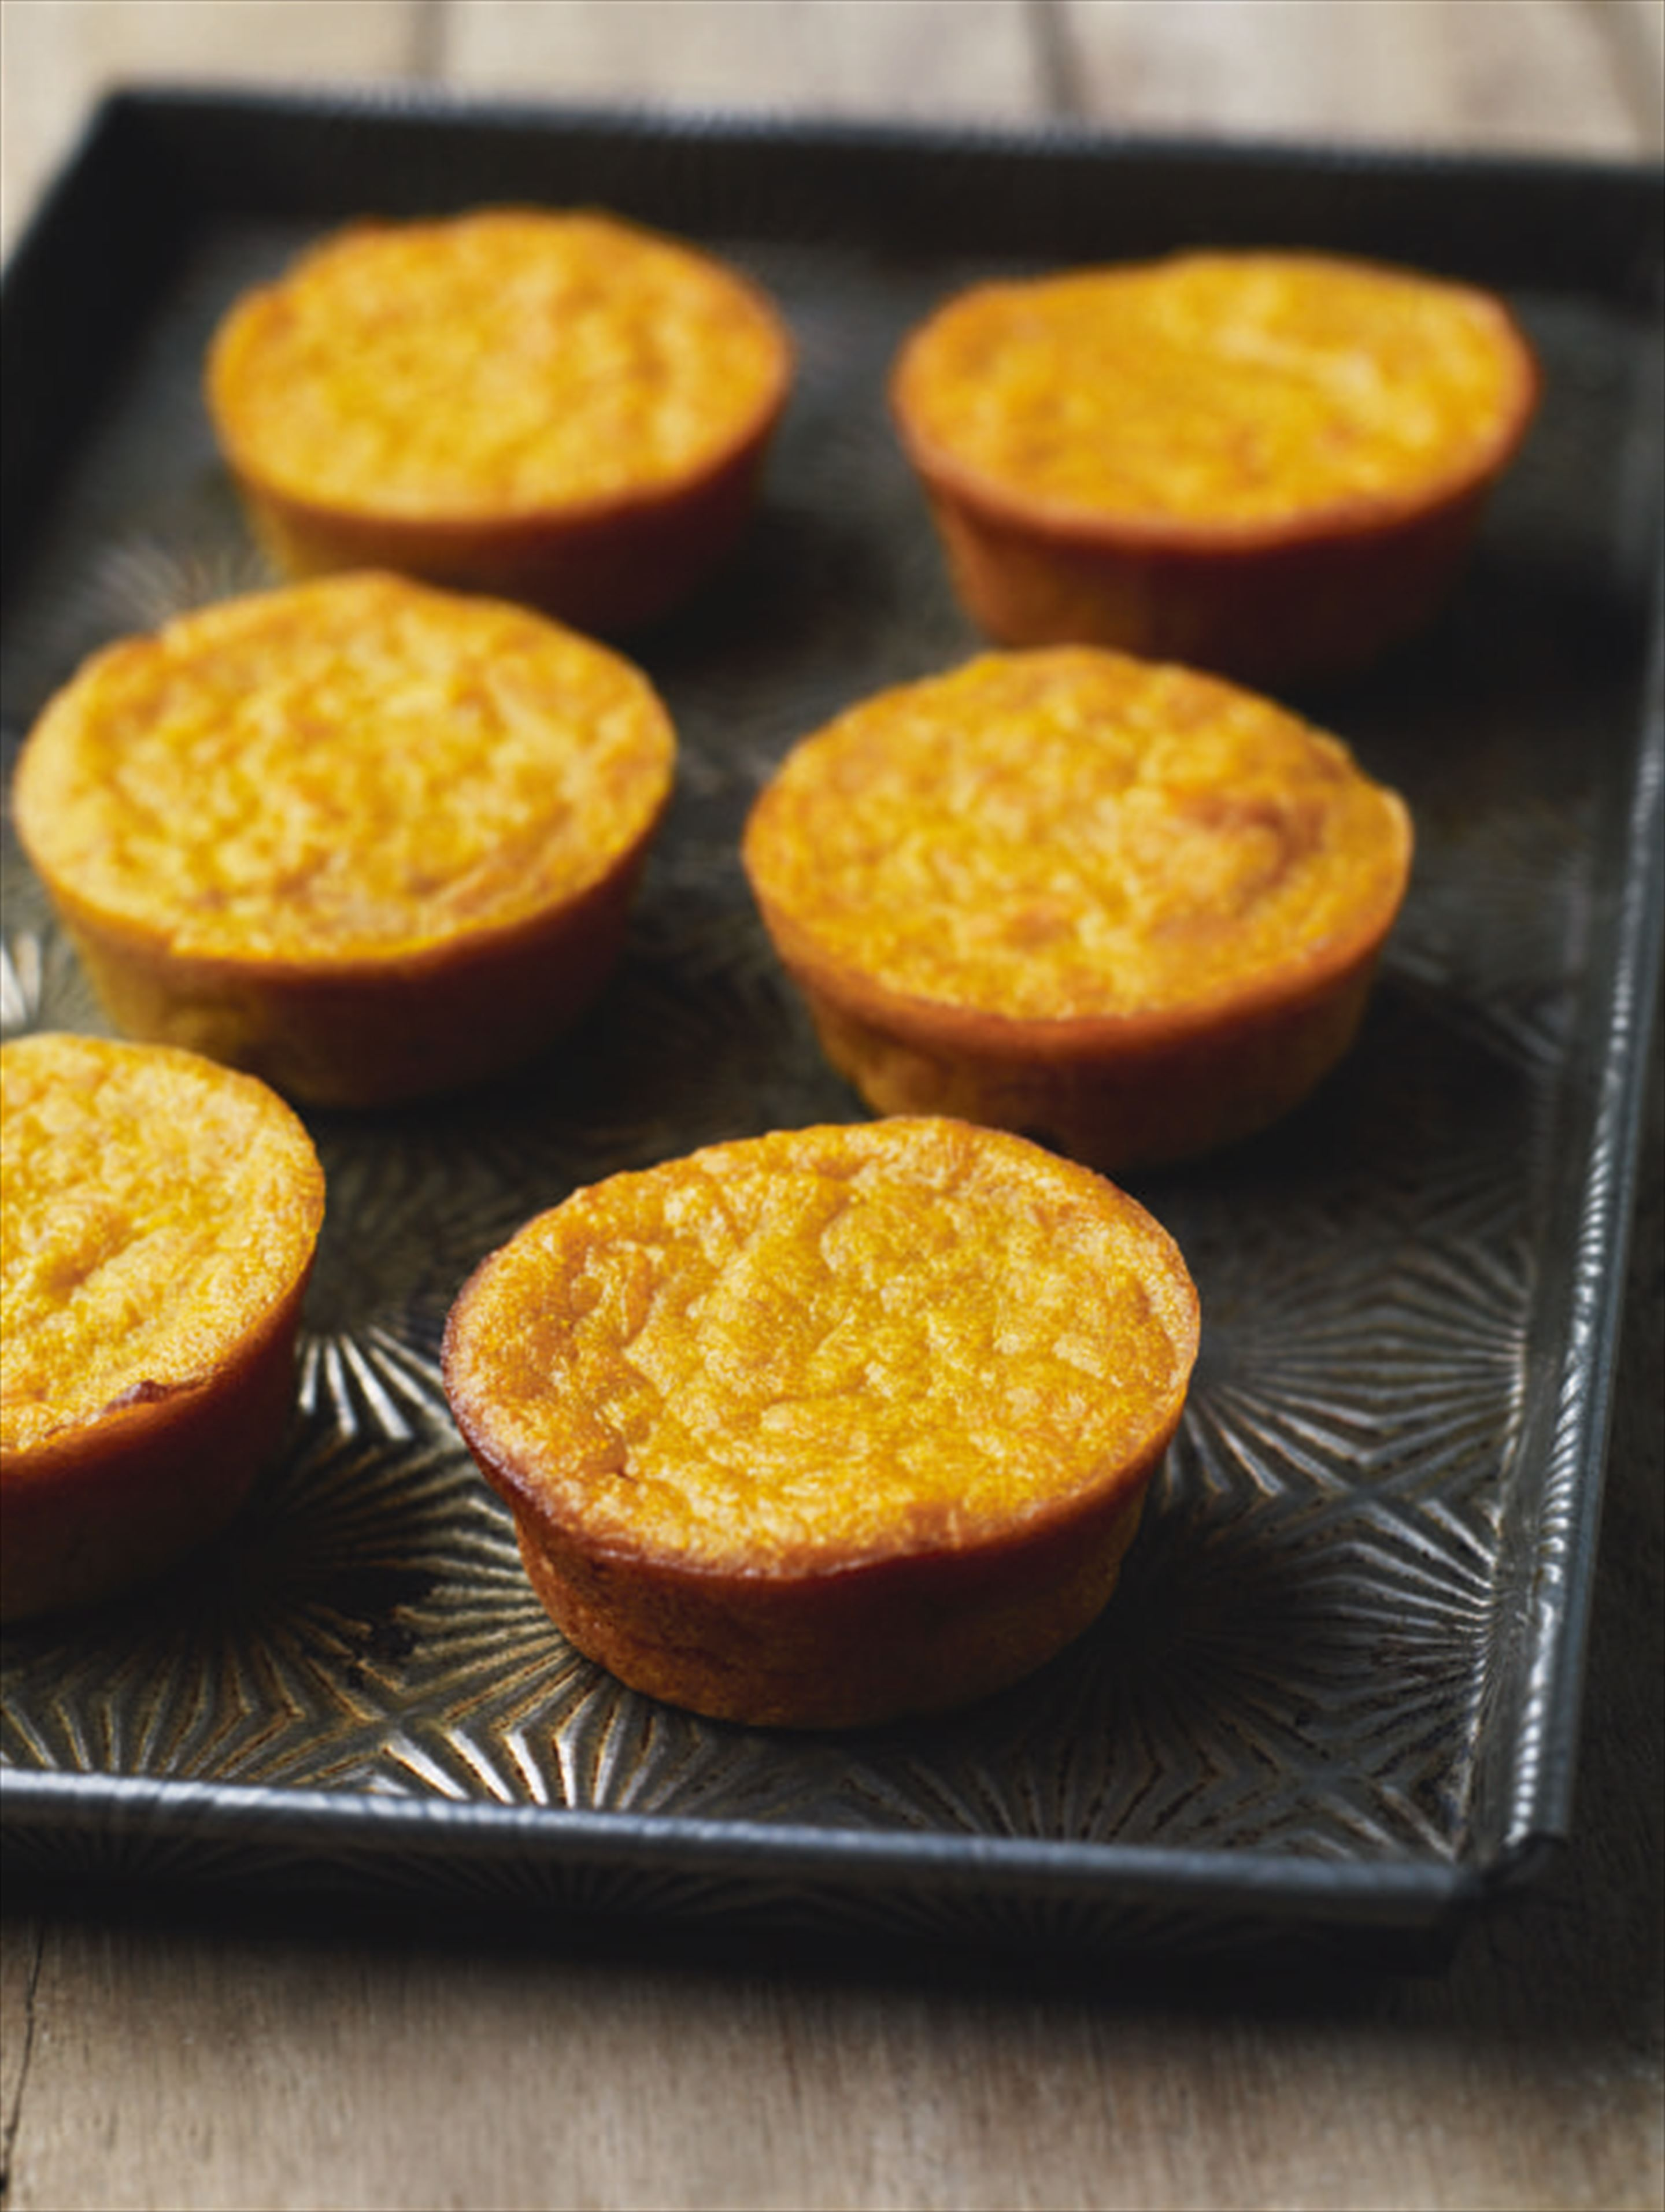 Carrot 'cheese' cakes